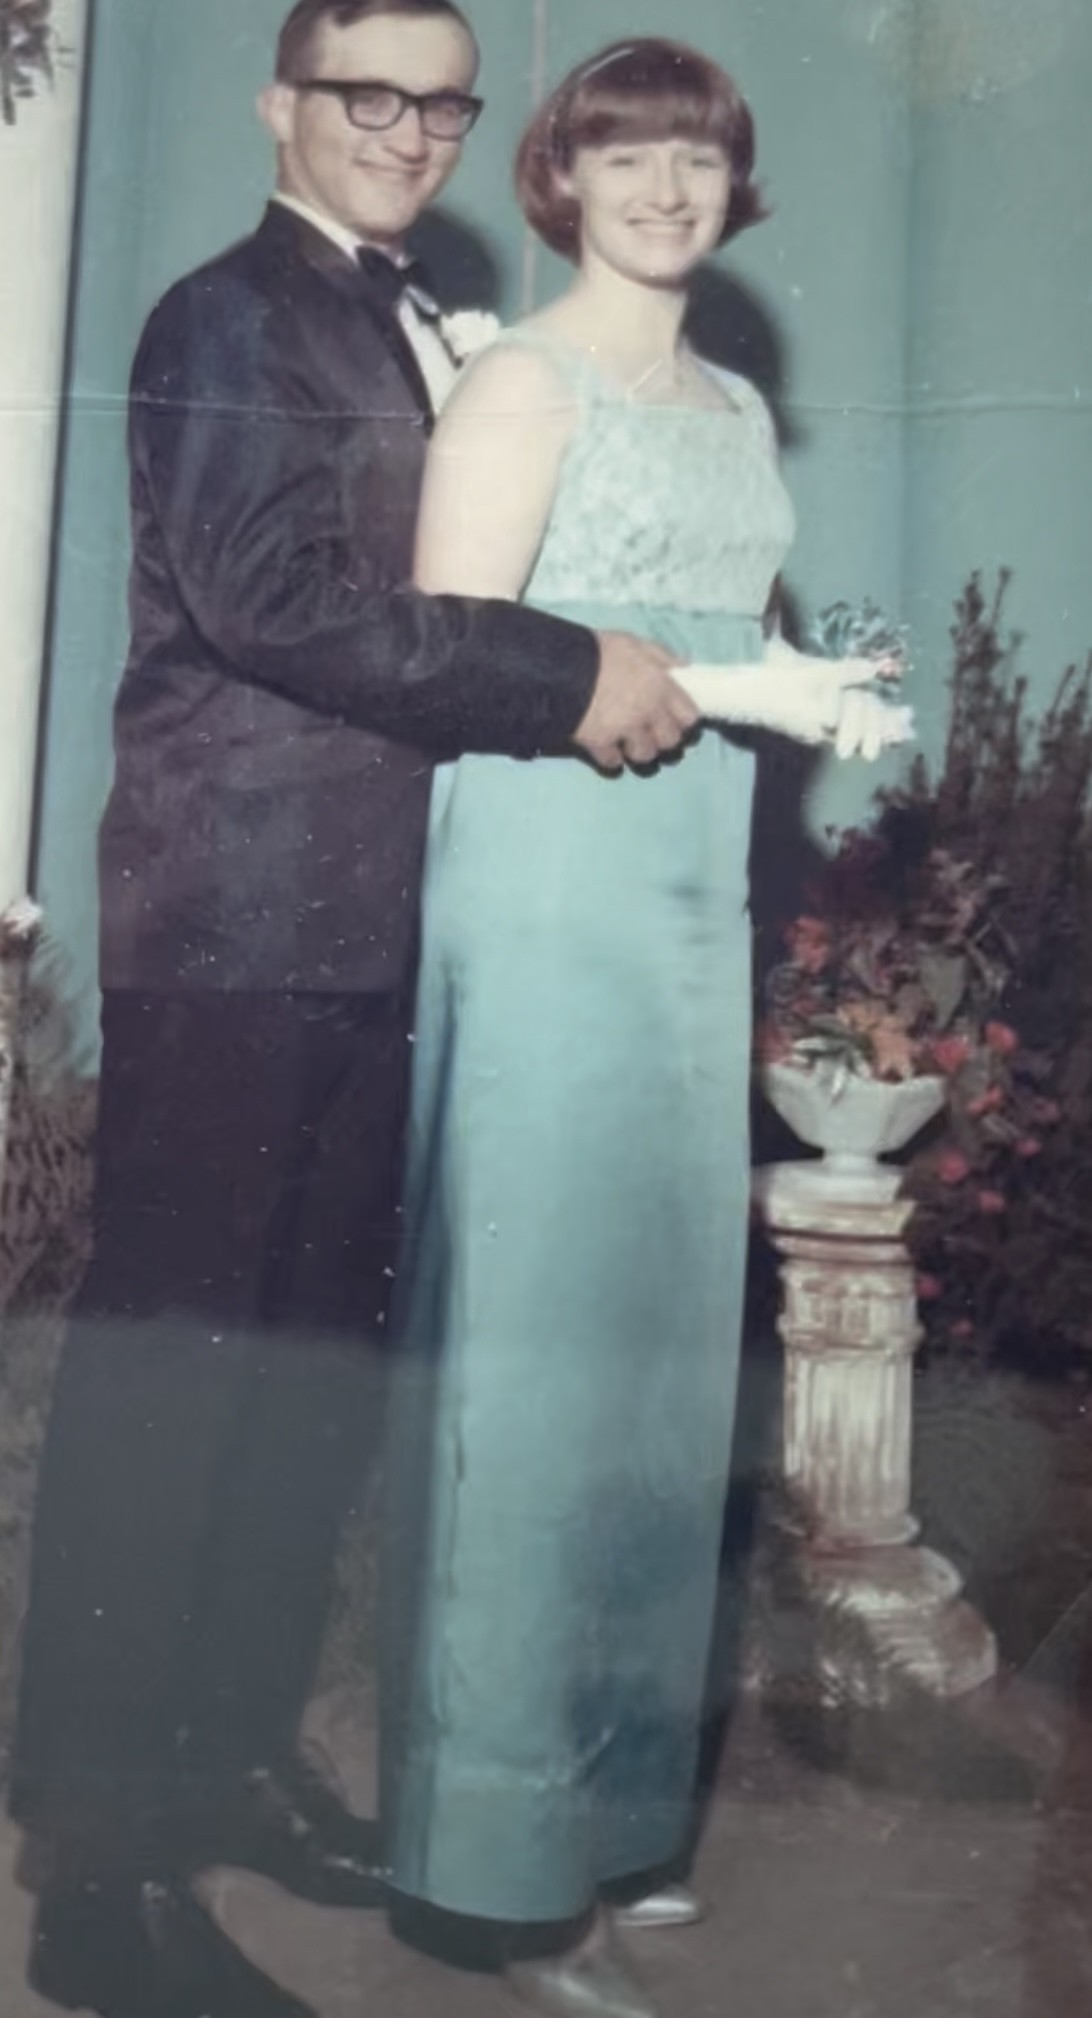 Boy and girl in senior prom photo, girl wearing long blue dress with laced bodice, boy in tuxedo about 1967